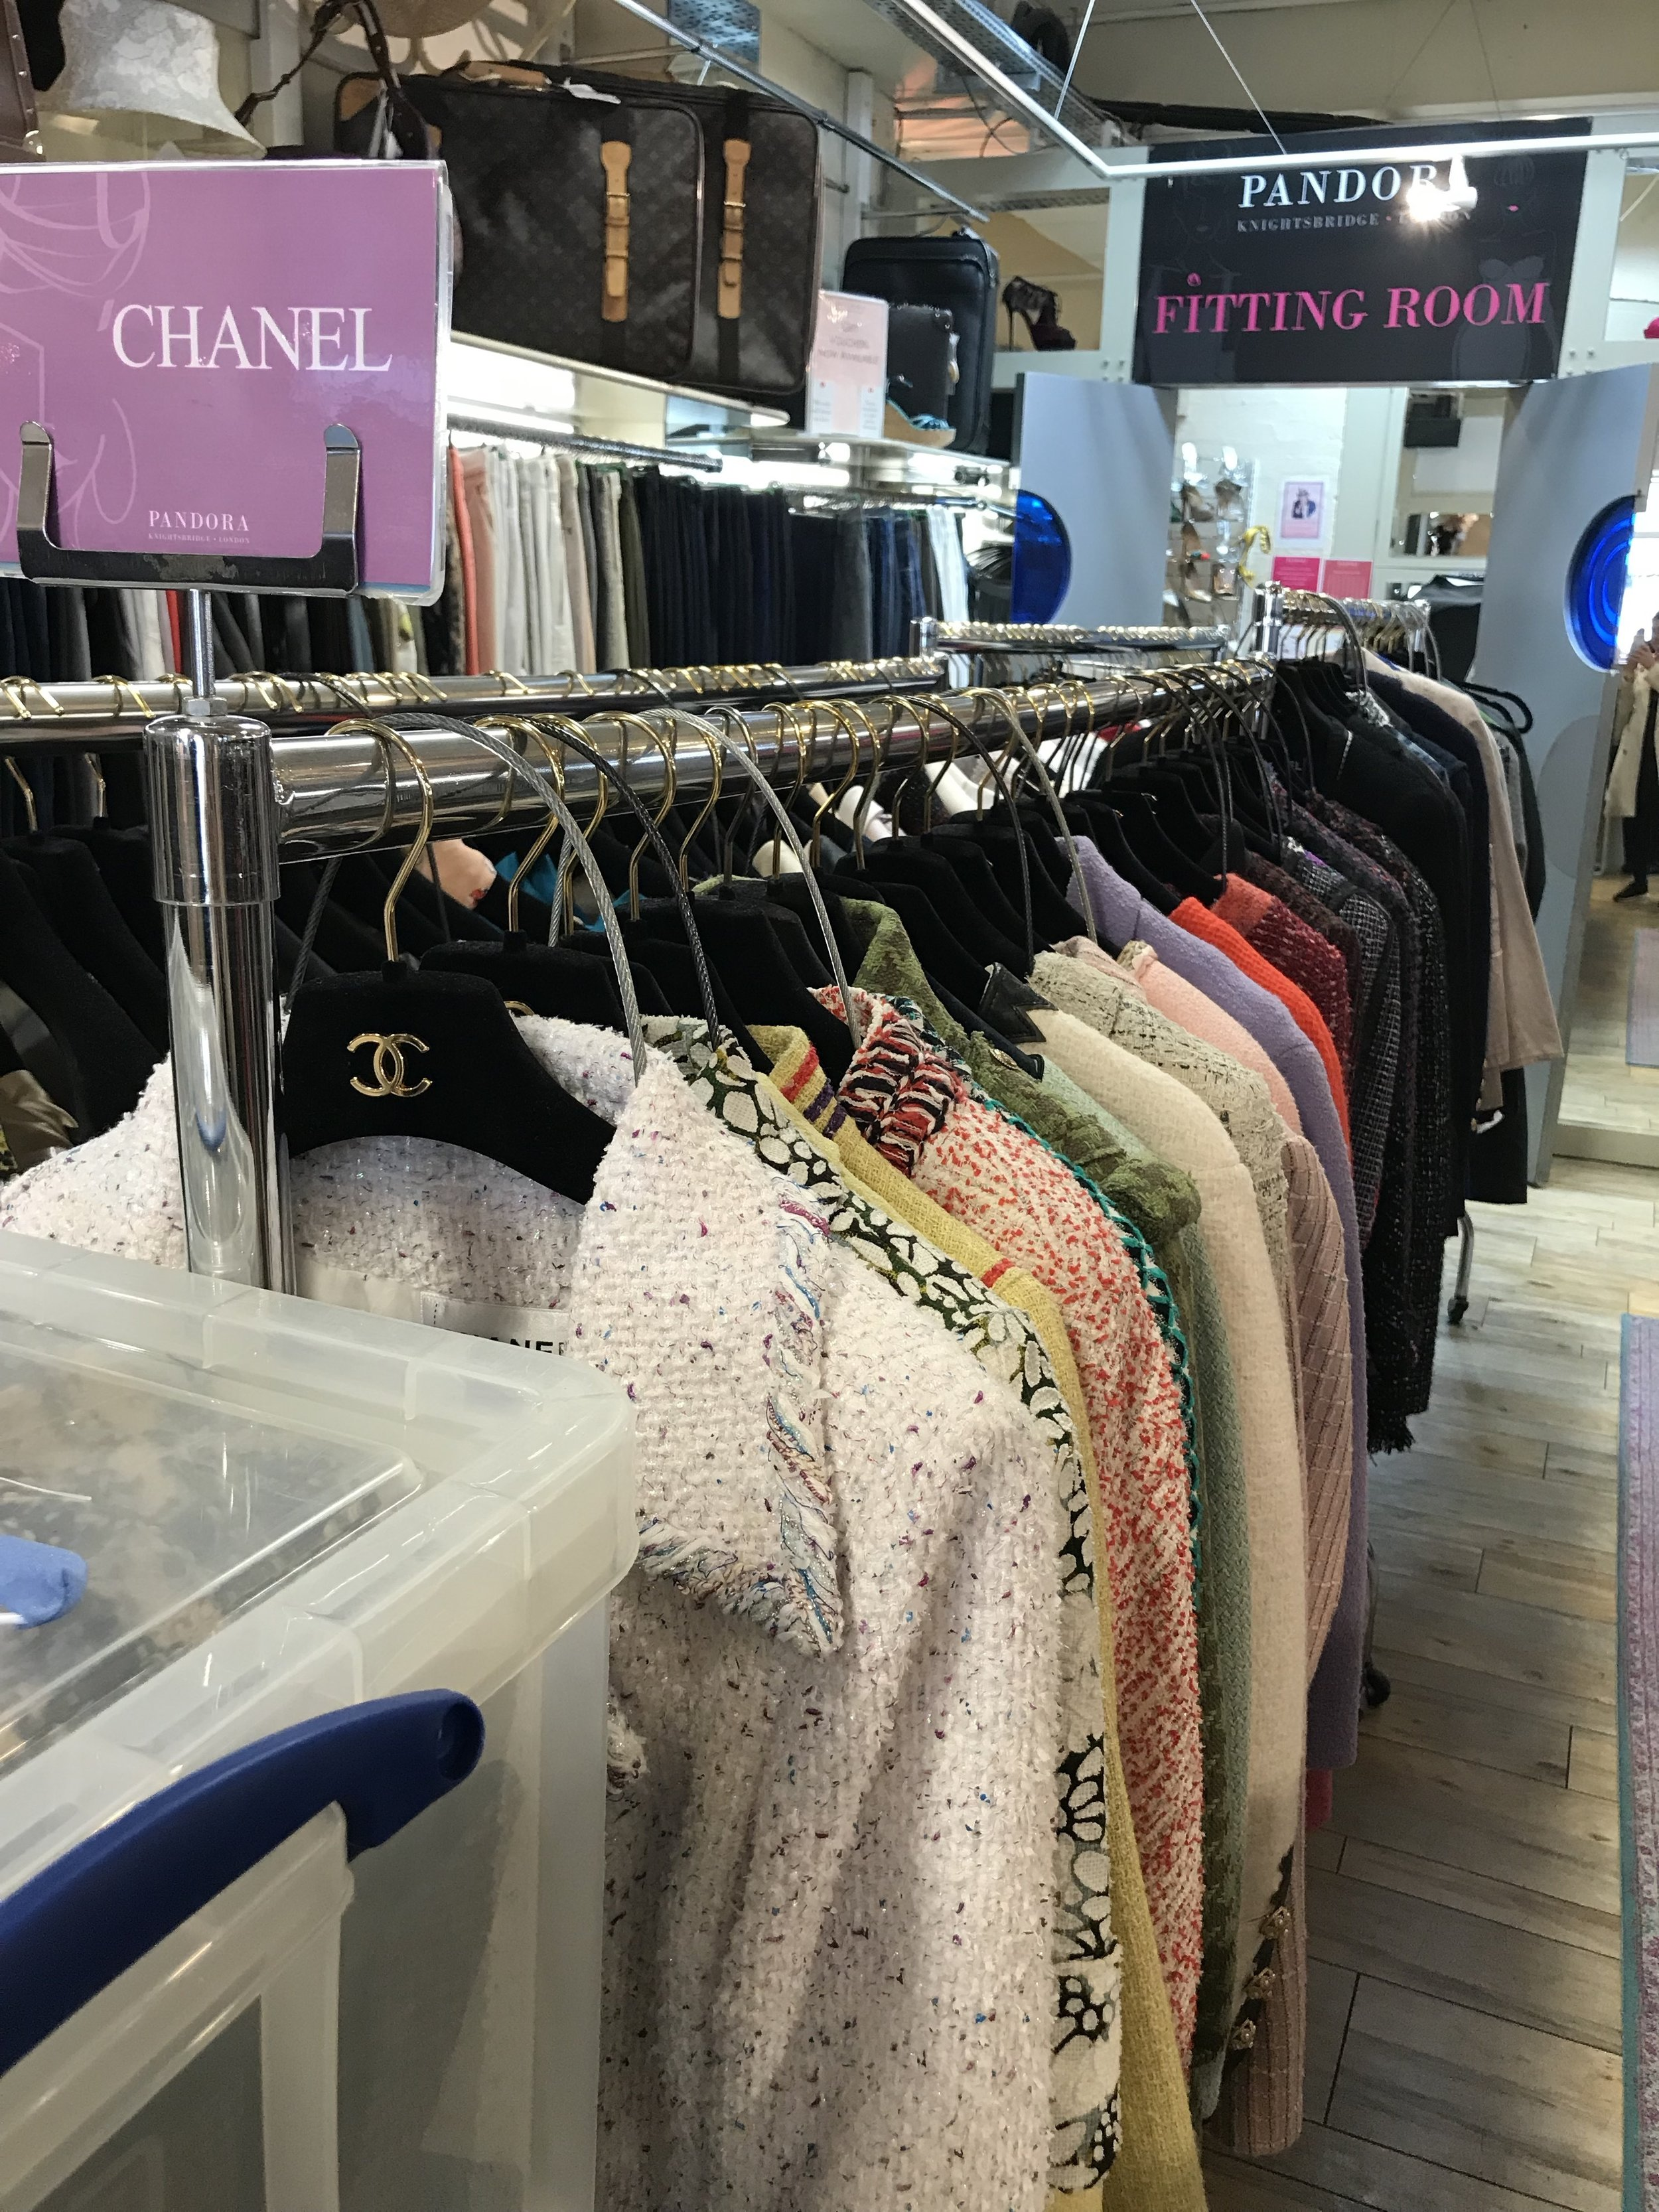 Chanel suits spotted by Alycia in Knightsbridge consignment stores.